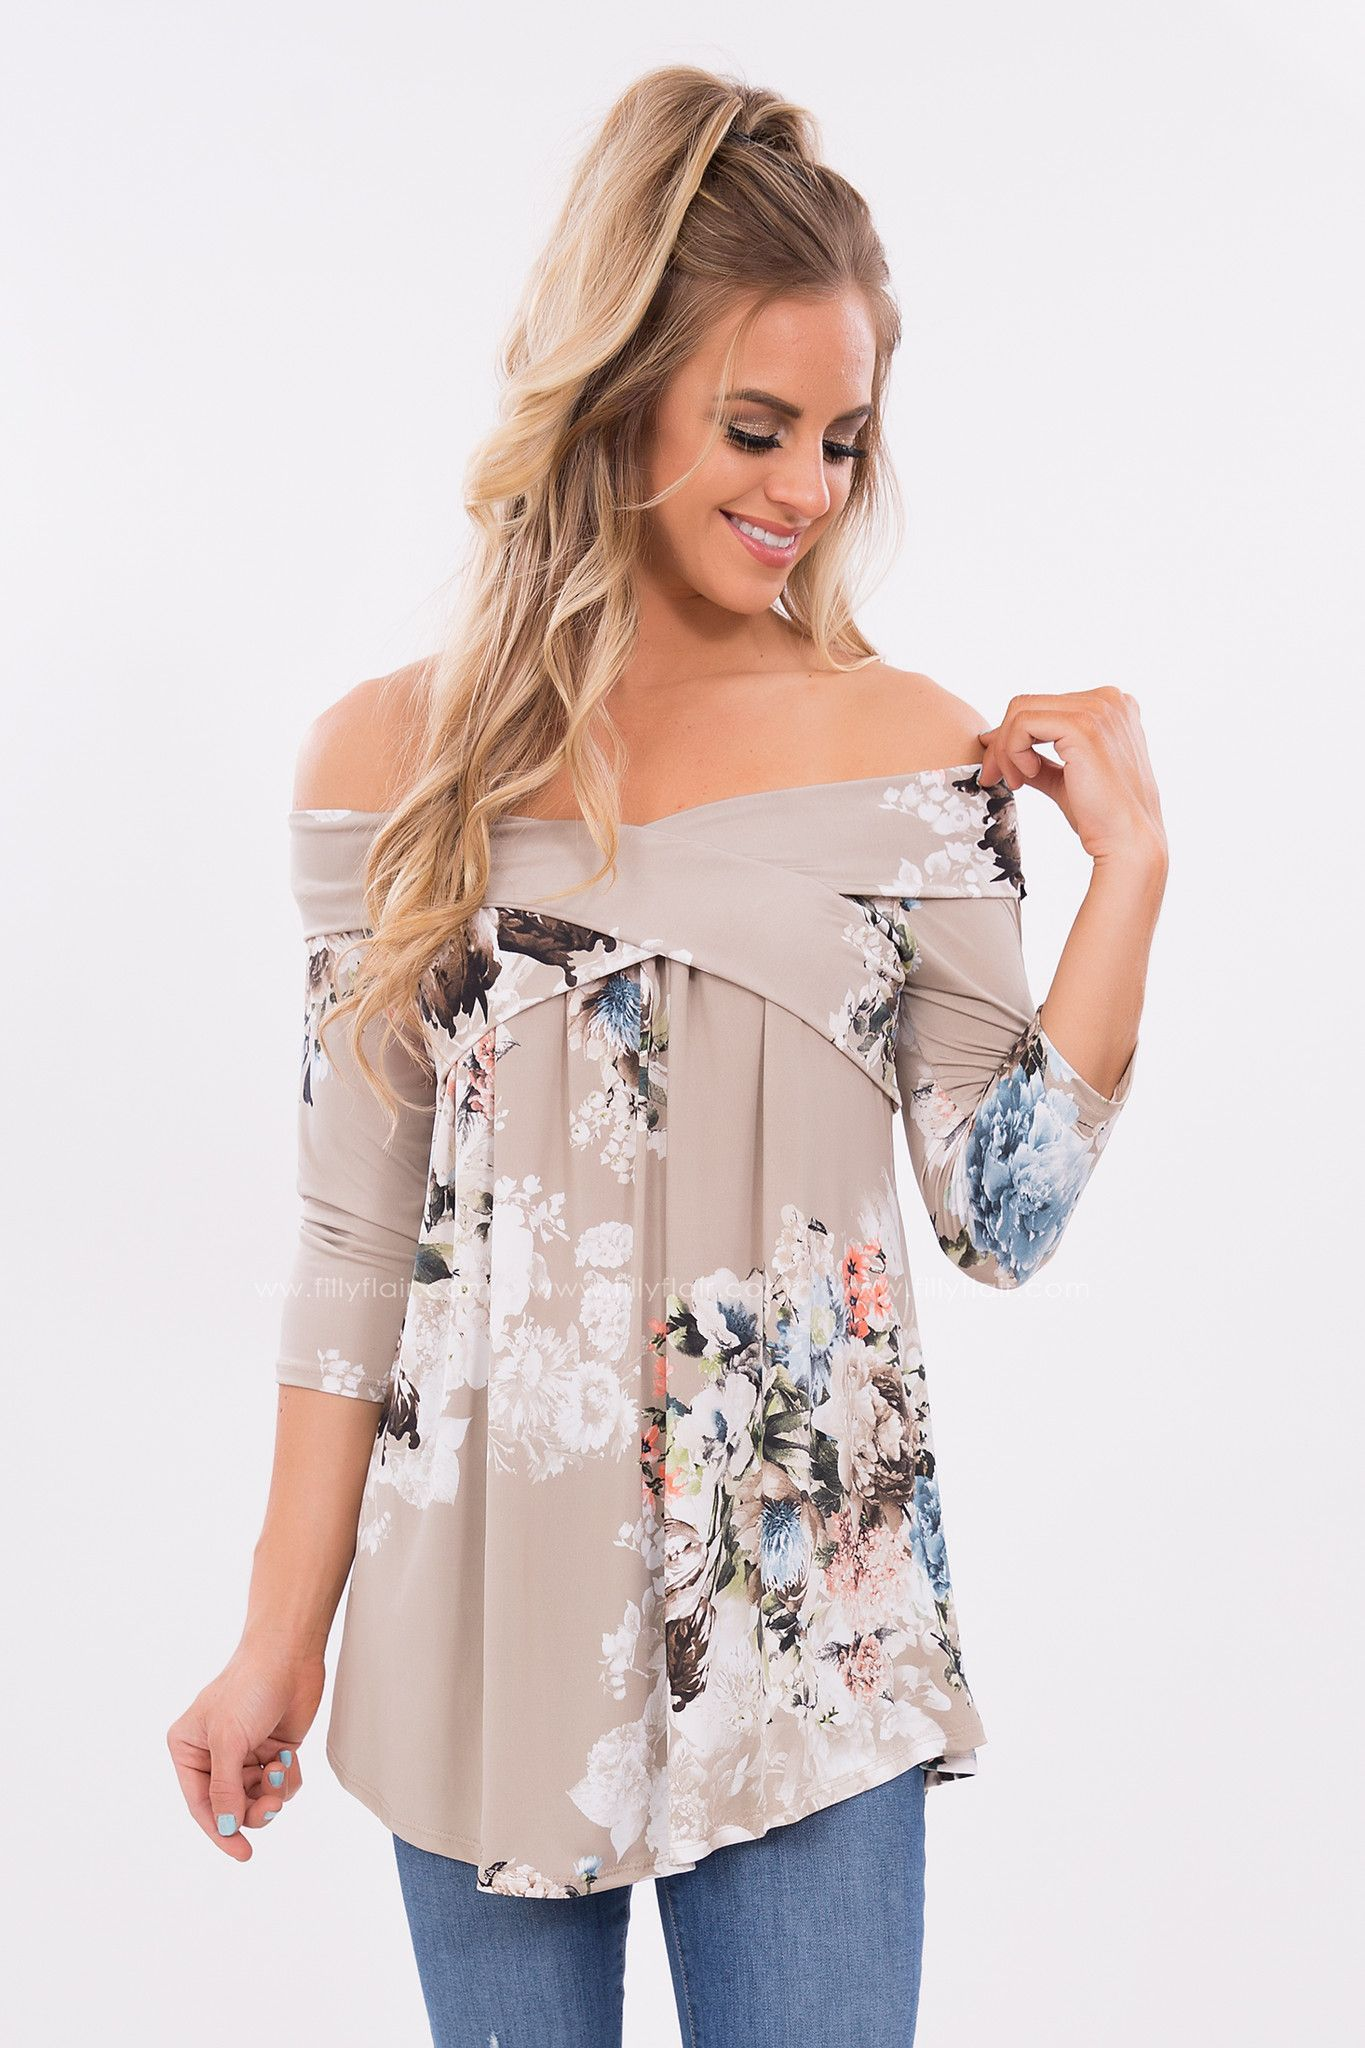 a564318d6224 Above All Floral Print Off The Shoulder Top in Taupe